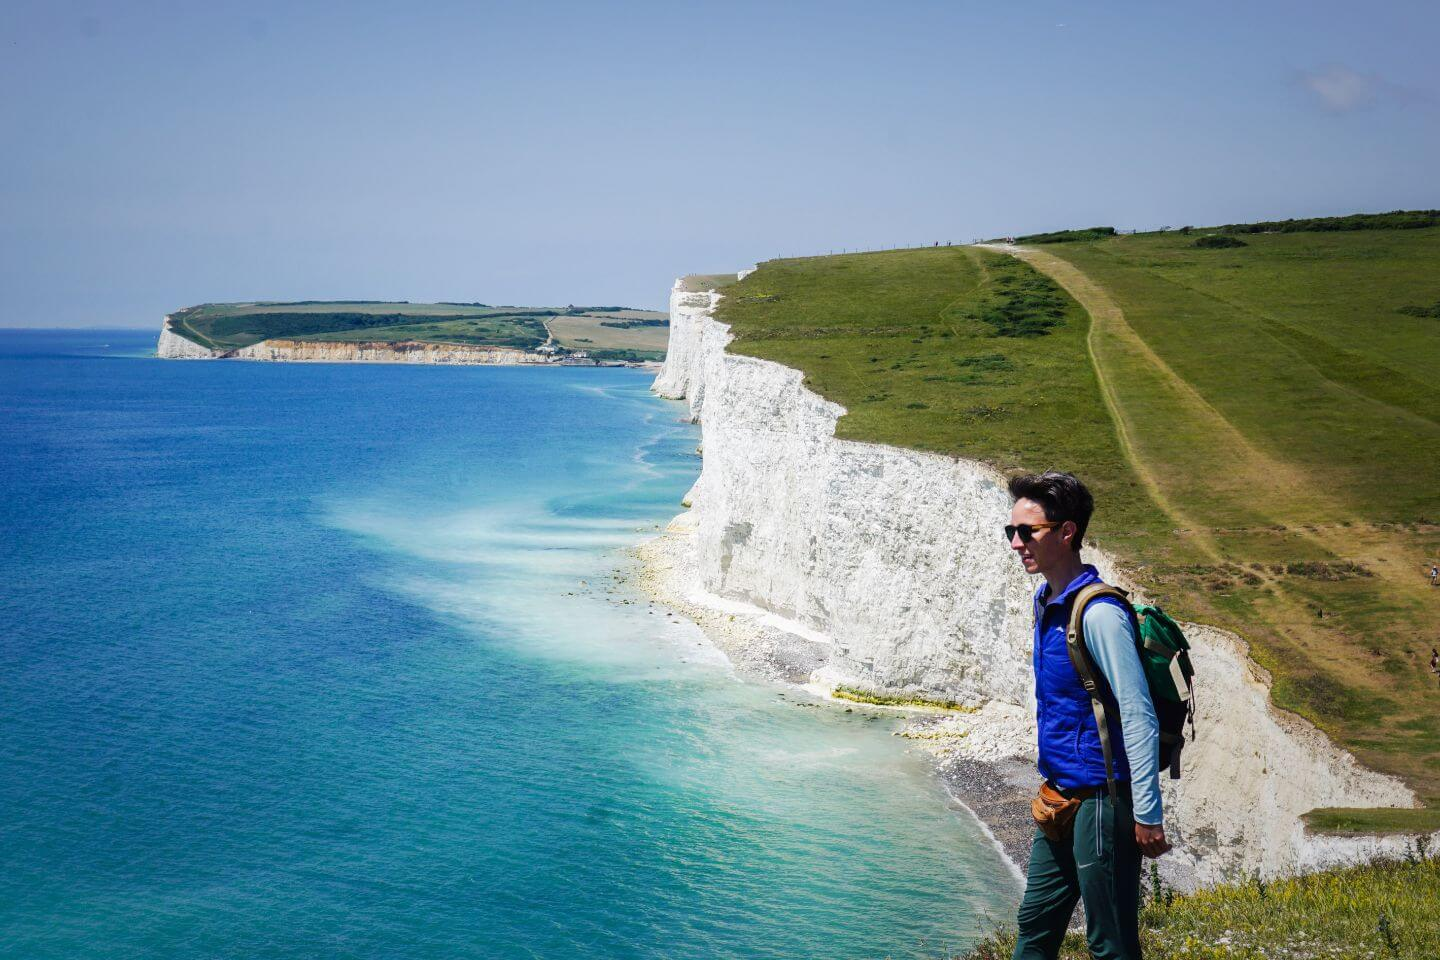 Seaford to Eastbourne walk - Seven Sisters Cliffs Hike